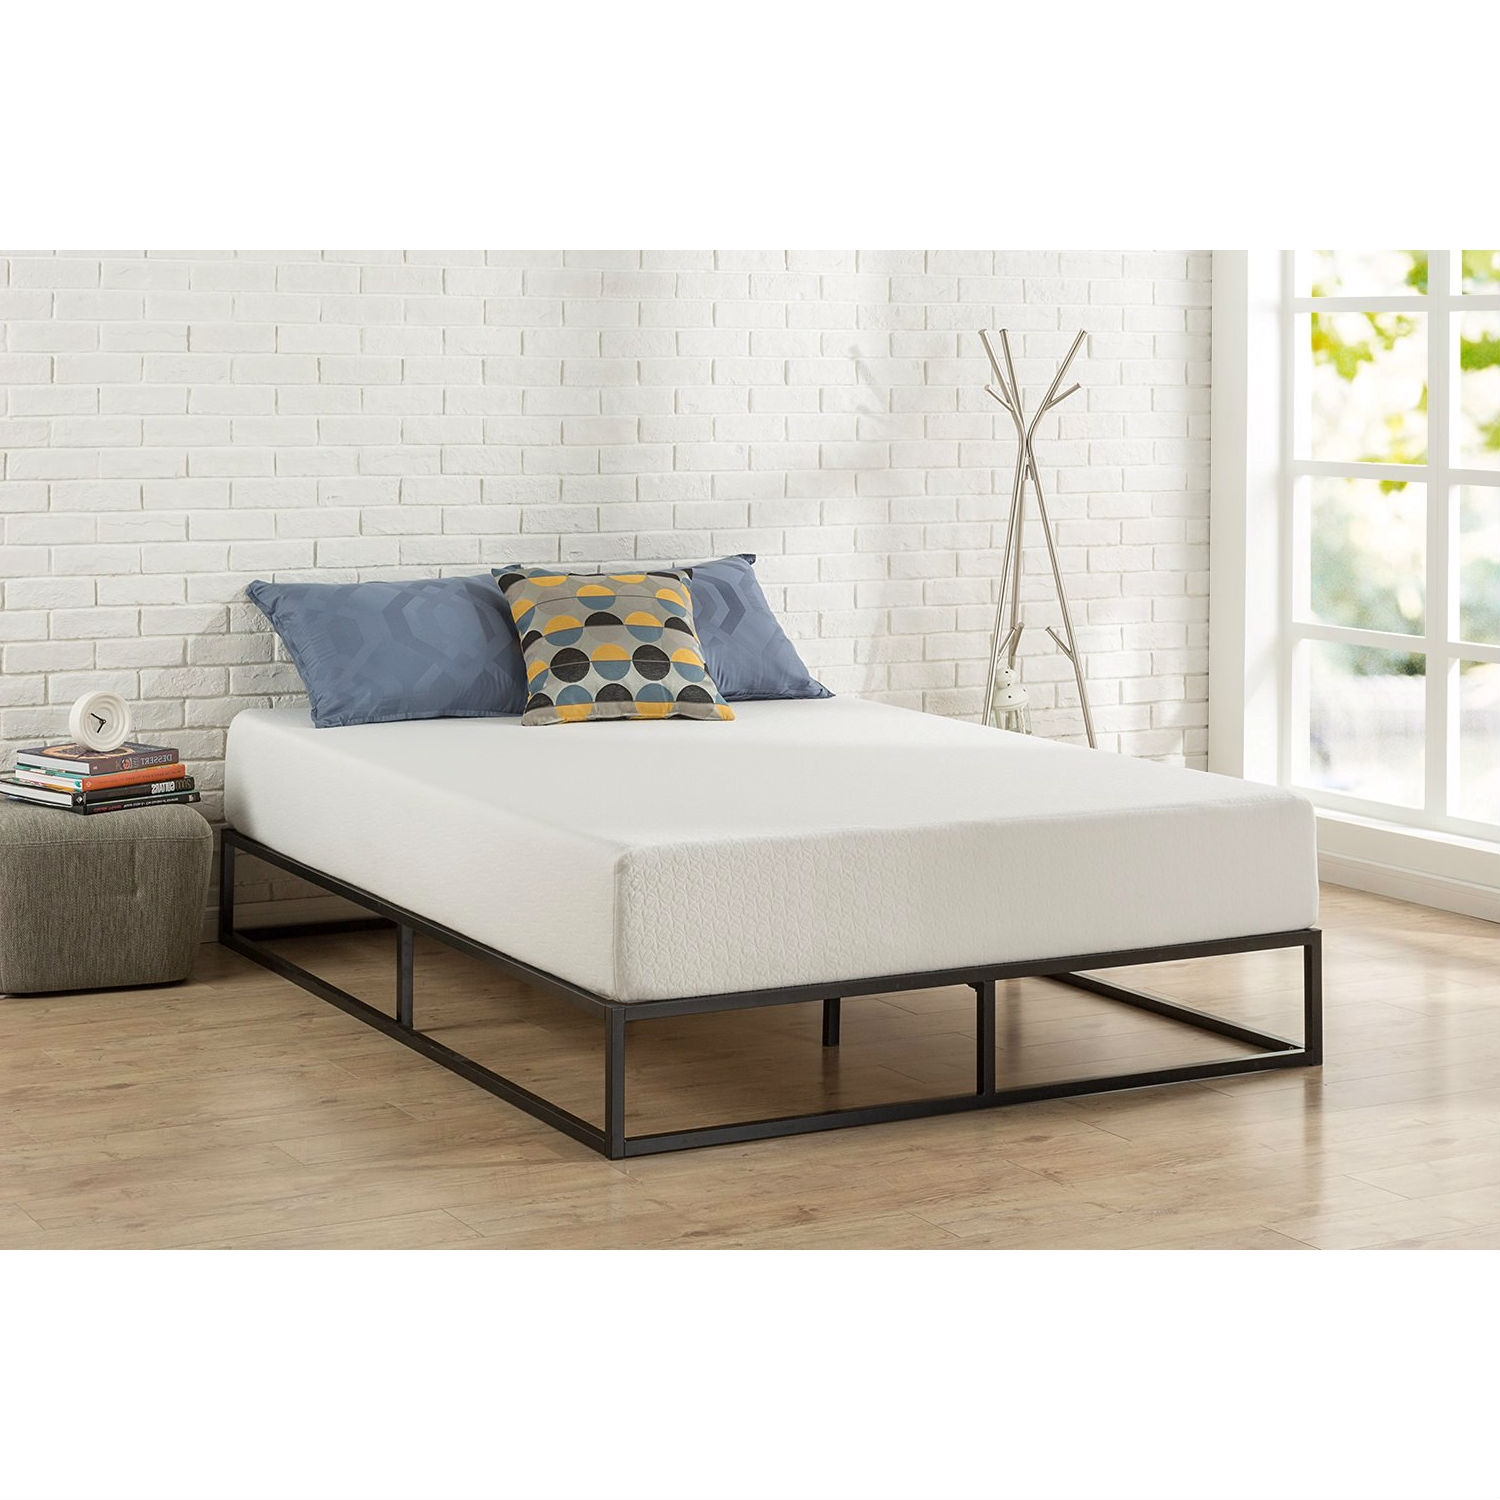 twin size 10 inch low profile modern metal platform bed frame with wooden slats - Modern Metal Bed Frame